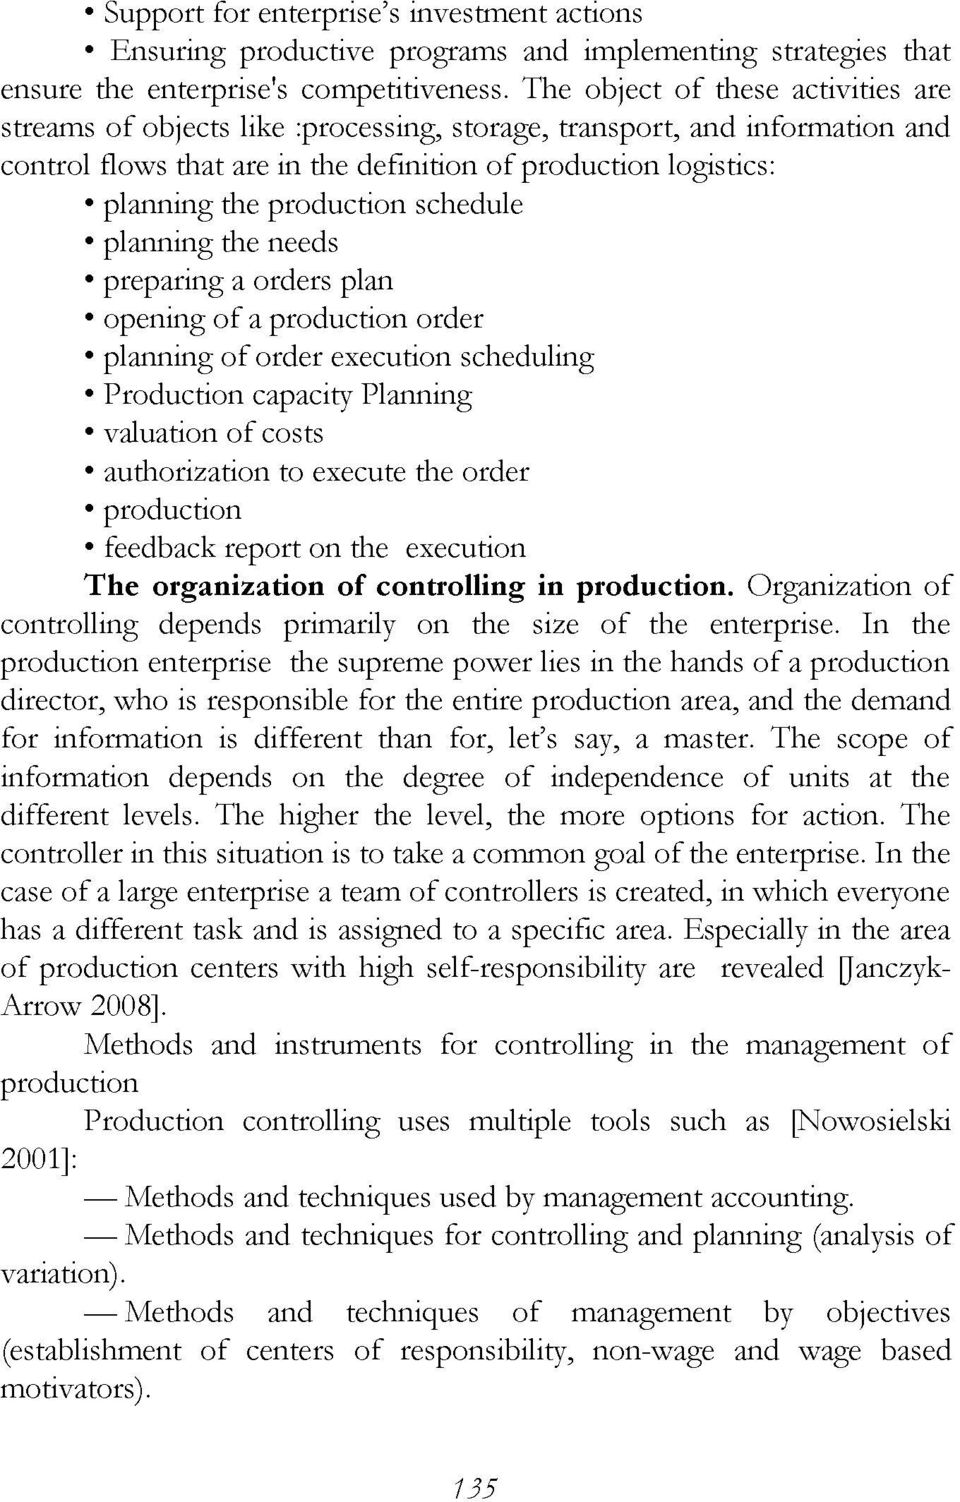 production schedule planning the needs preparing a orders plan opening of a production order planning of order execution scheduling Production capacity Planning valuation of costs authorization to